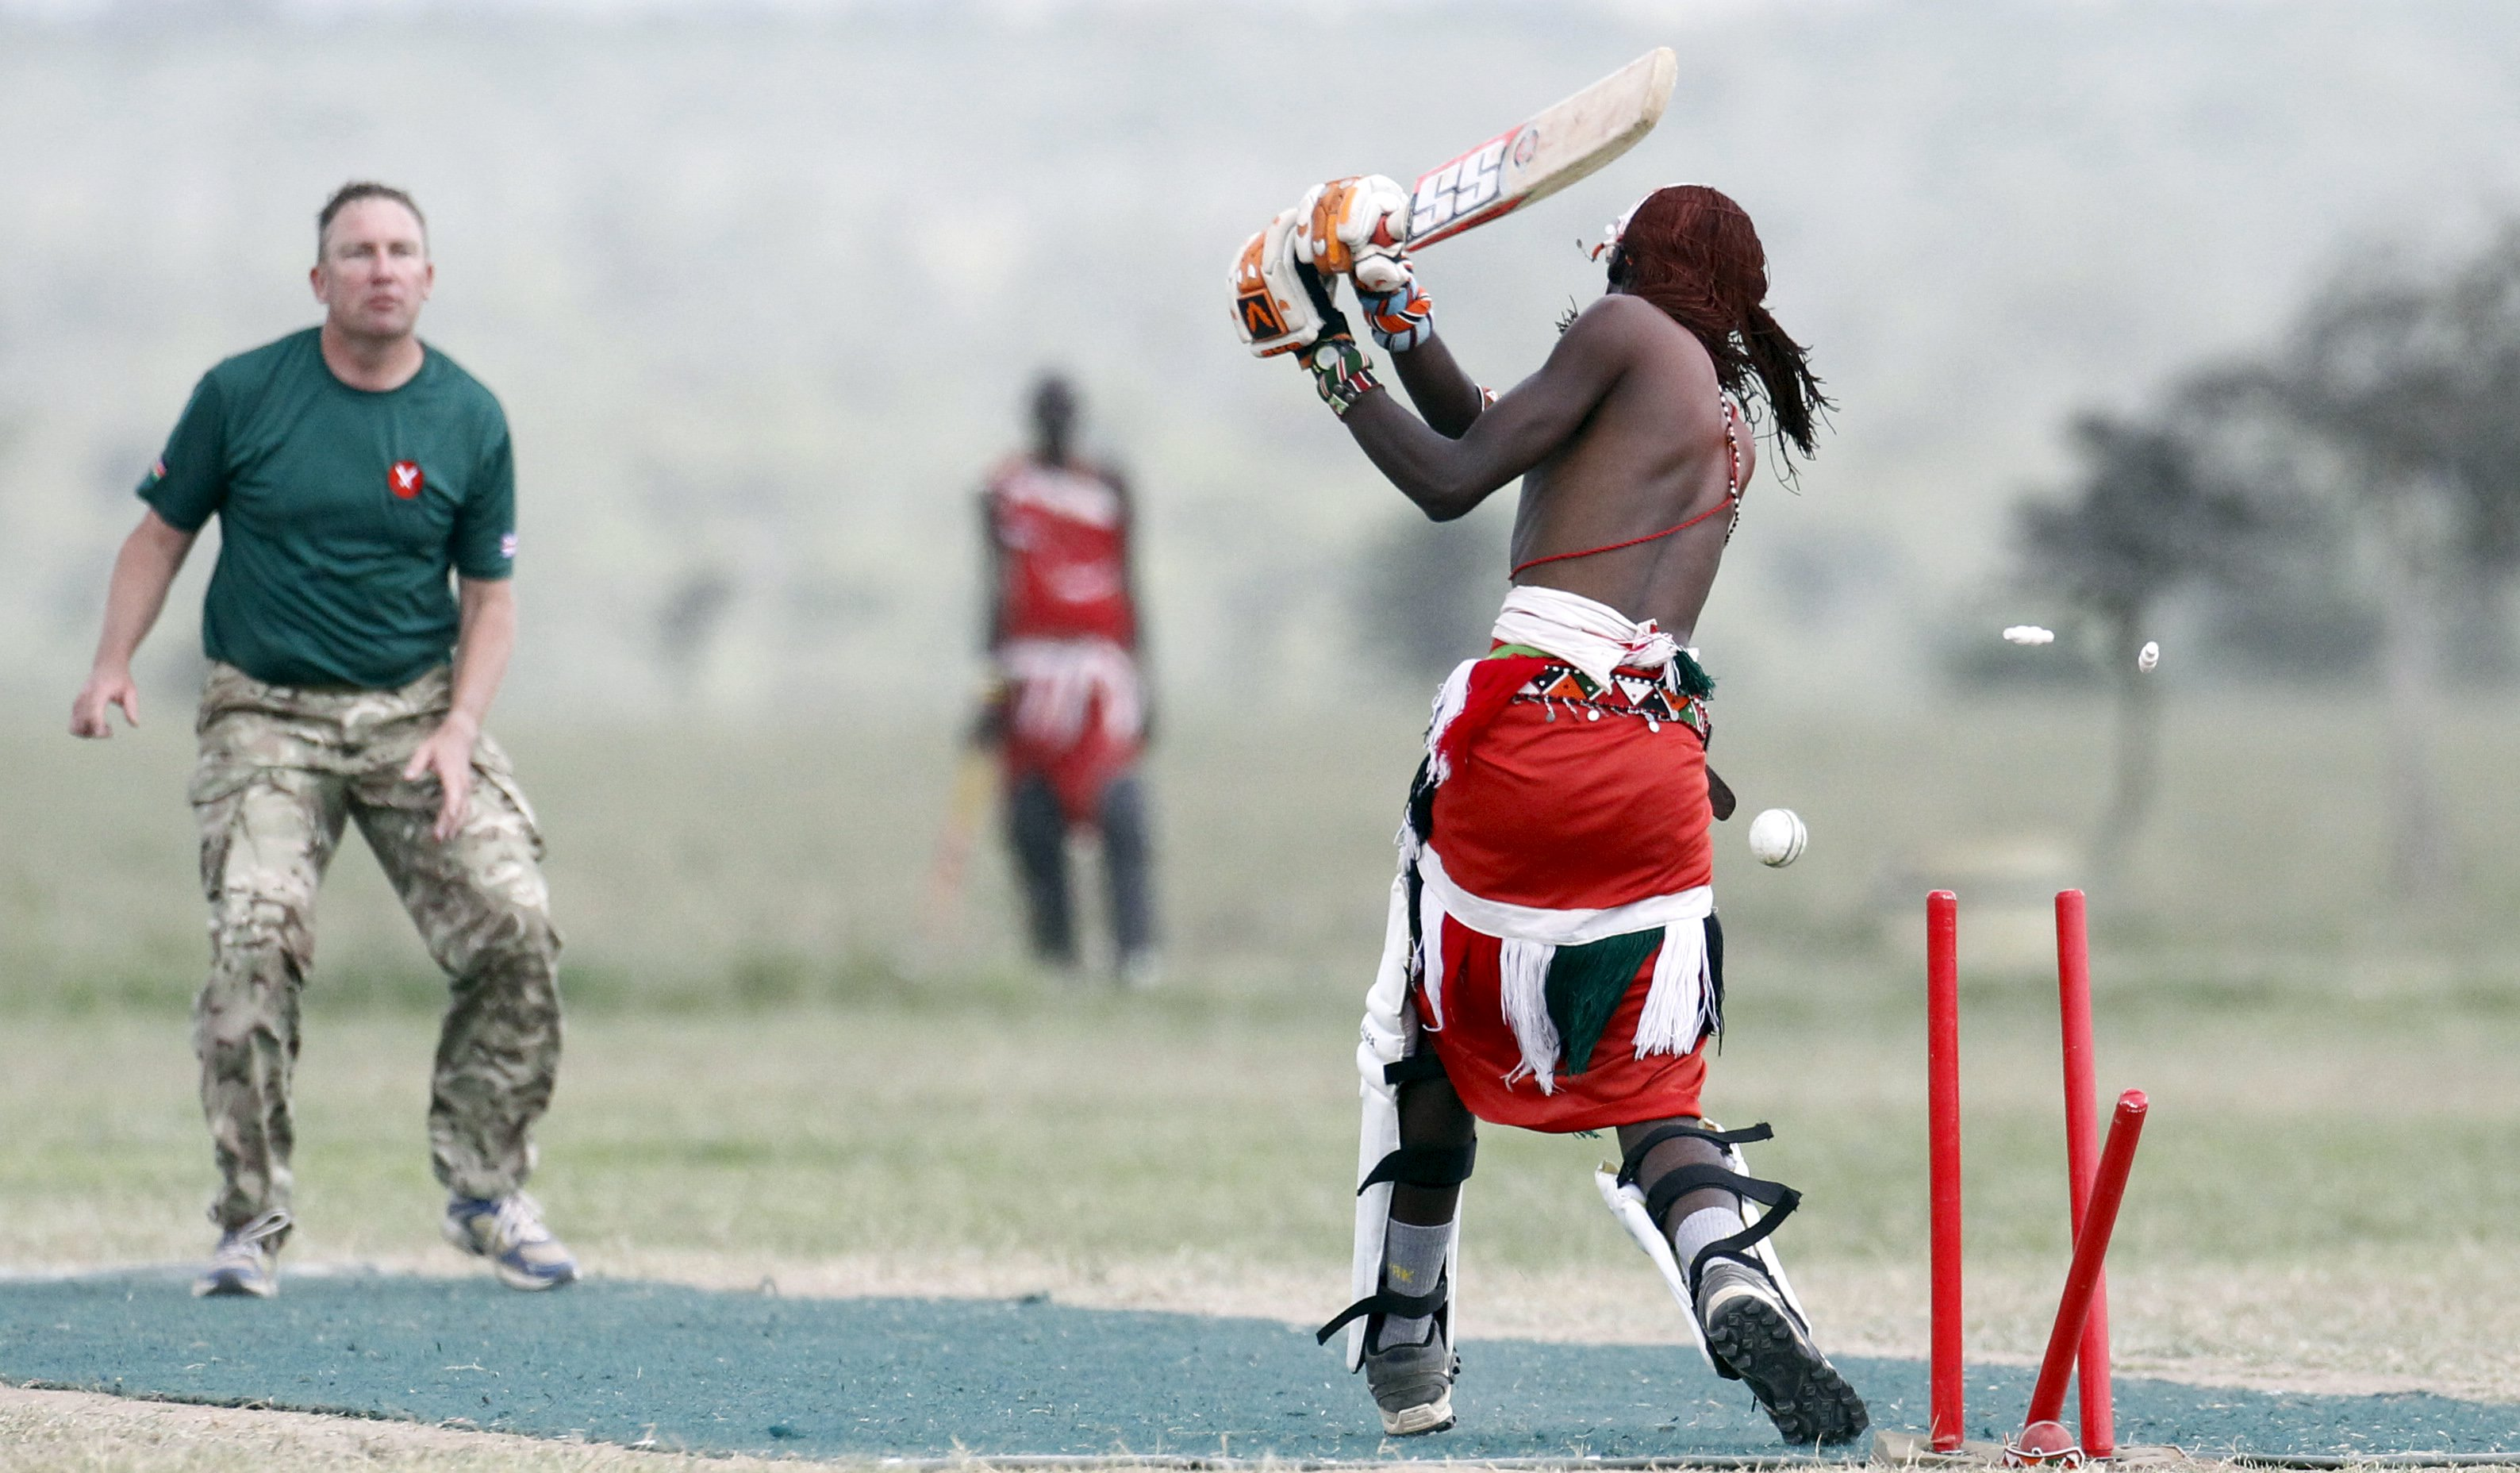 The Maasai Cricket Warriors partnered with the Australian High Commission and British Army Training Unit in Kenya to organise the charity cricket tournament. [Thomas Mukoya/Reuters]